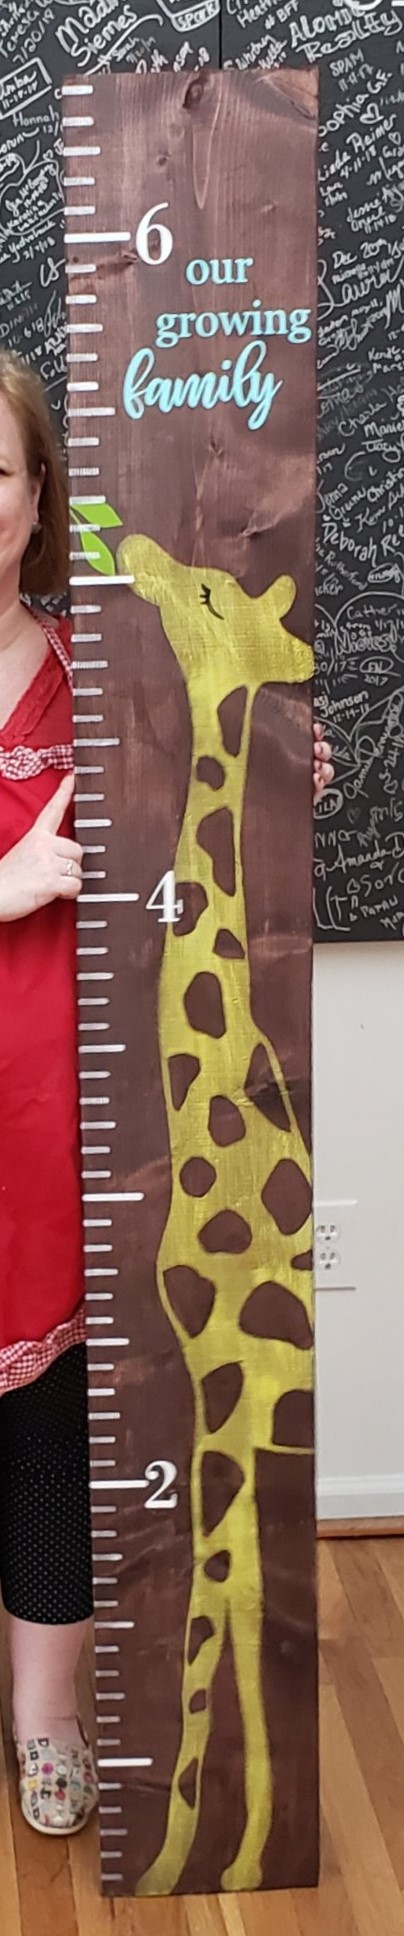 Growth Chart - Giraffe